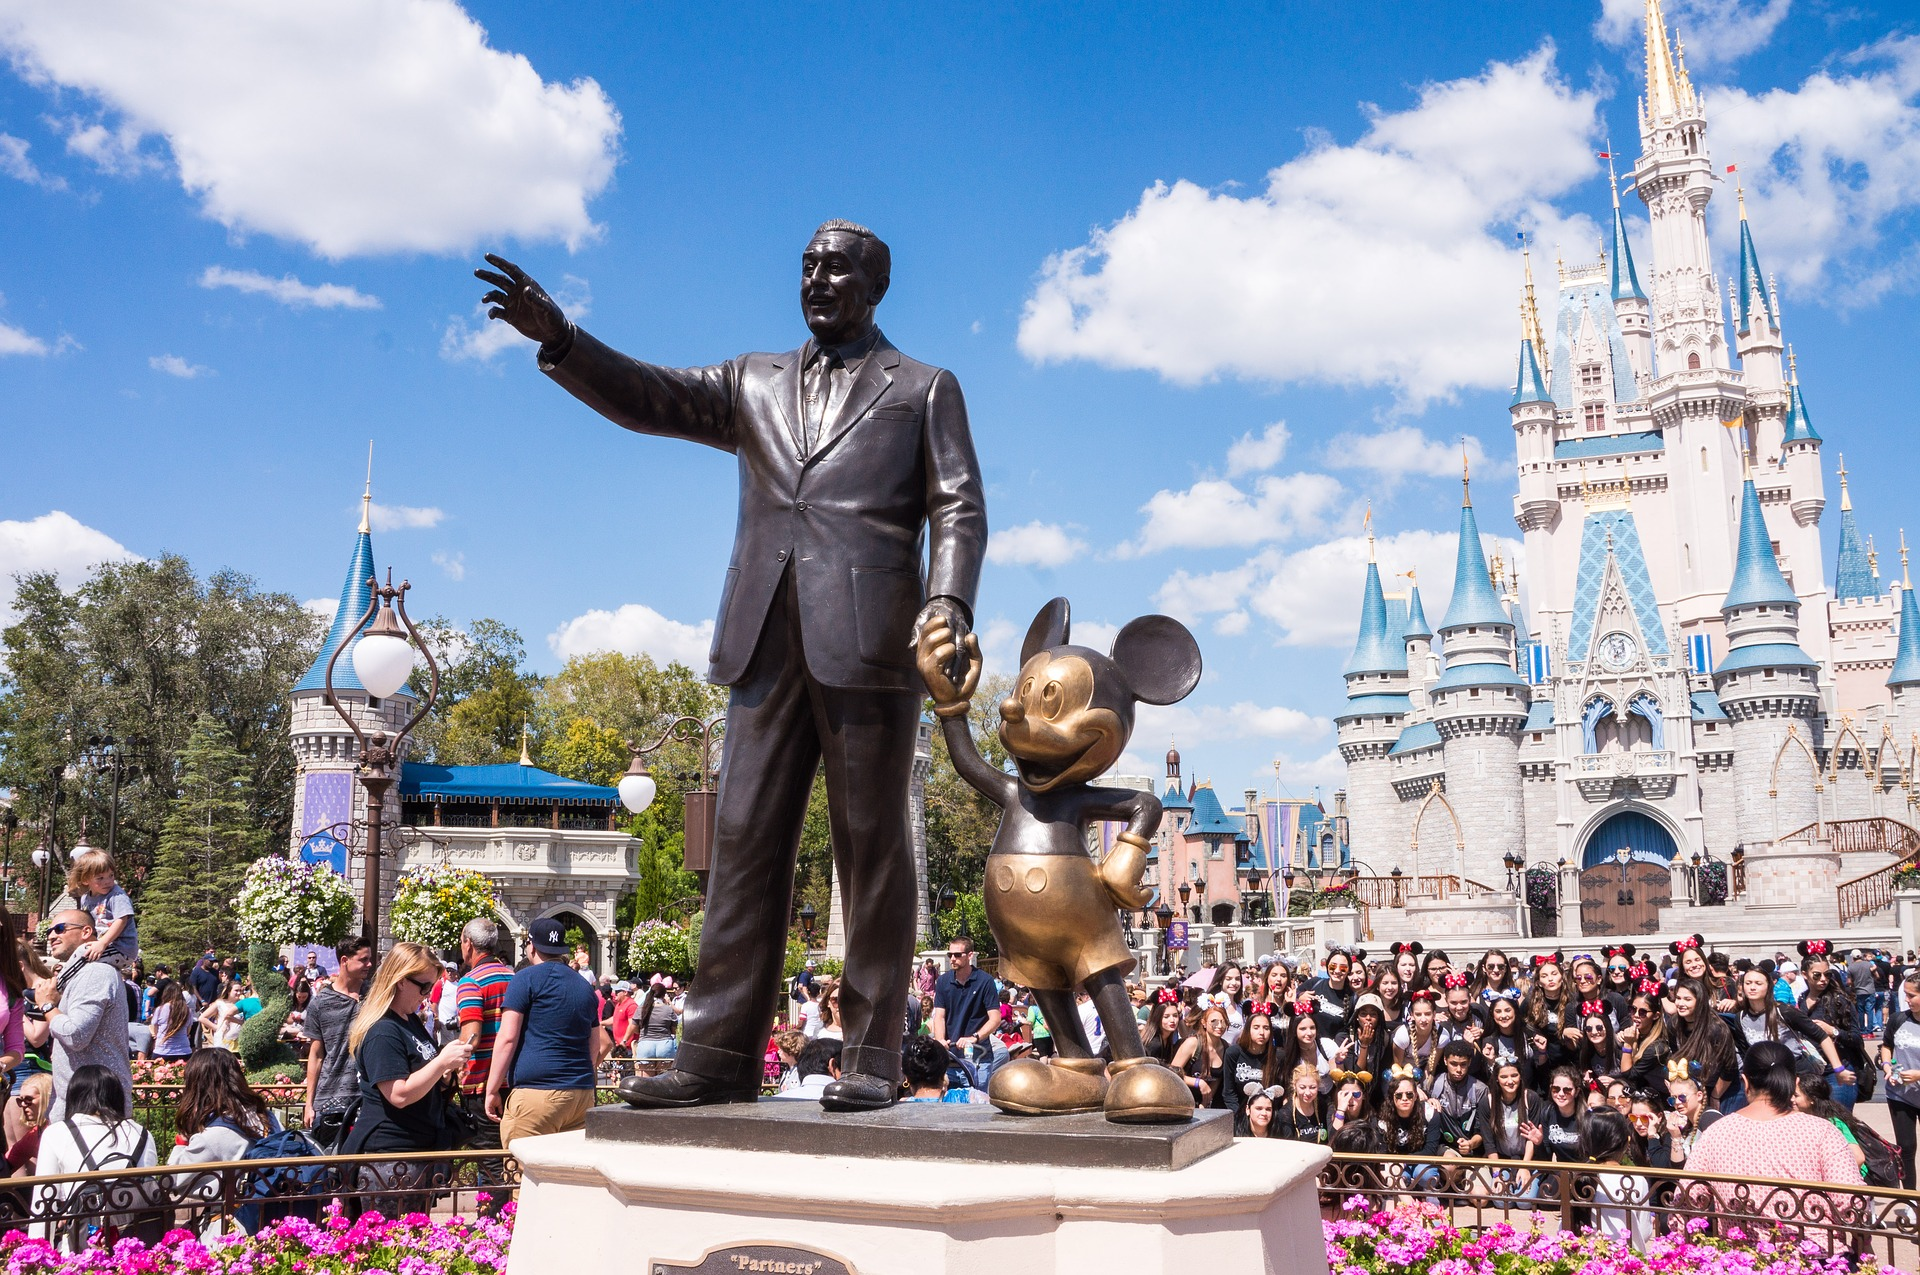 A picture of the Walt Disney statue at Disneyland to symbolise the live action movies on Disney+